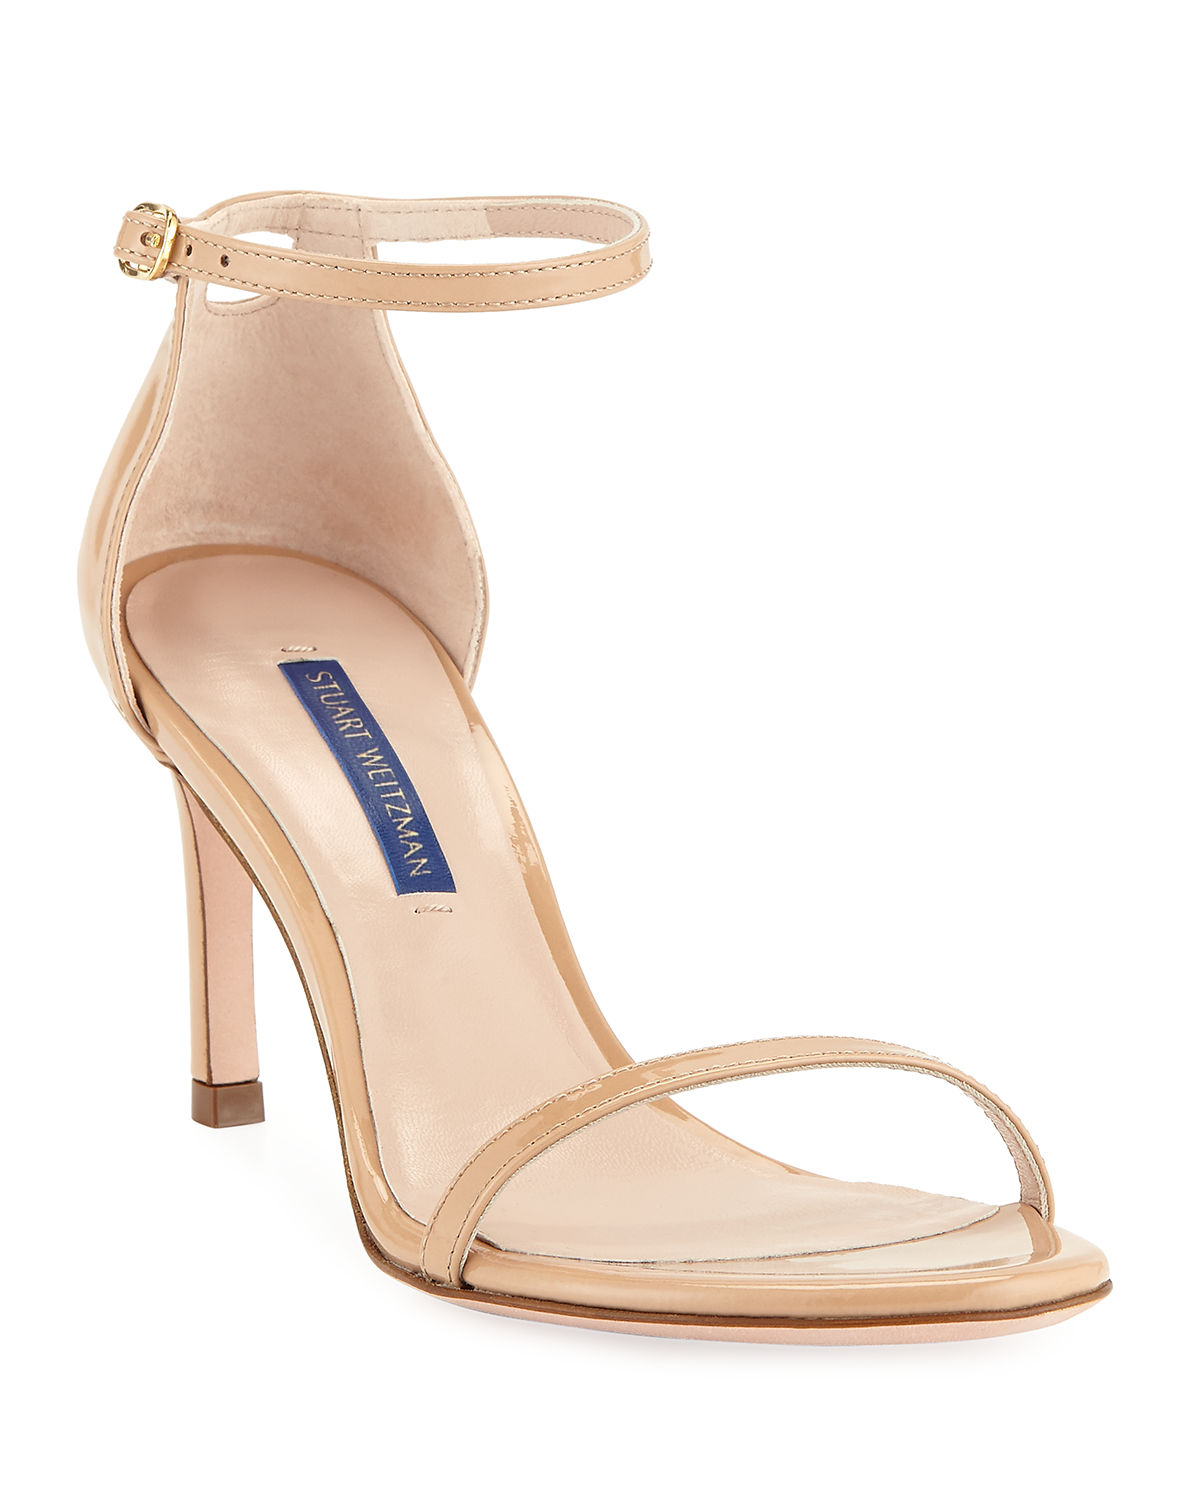 a1461cc00dc Nudist 80 Patent Leather Naked Sandals